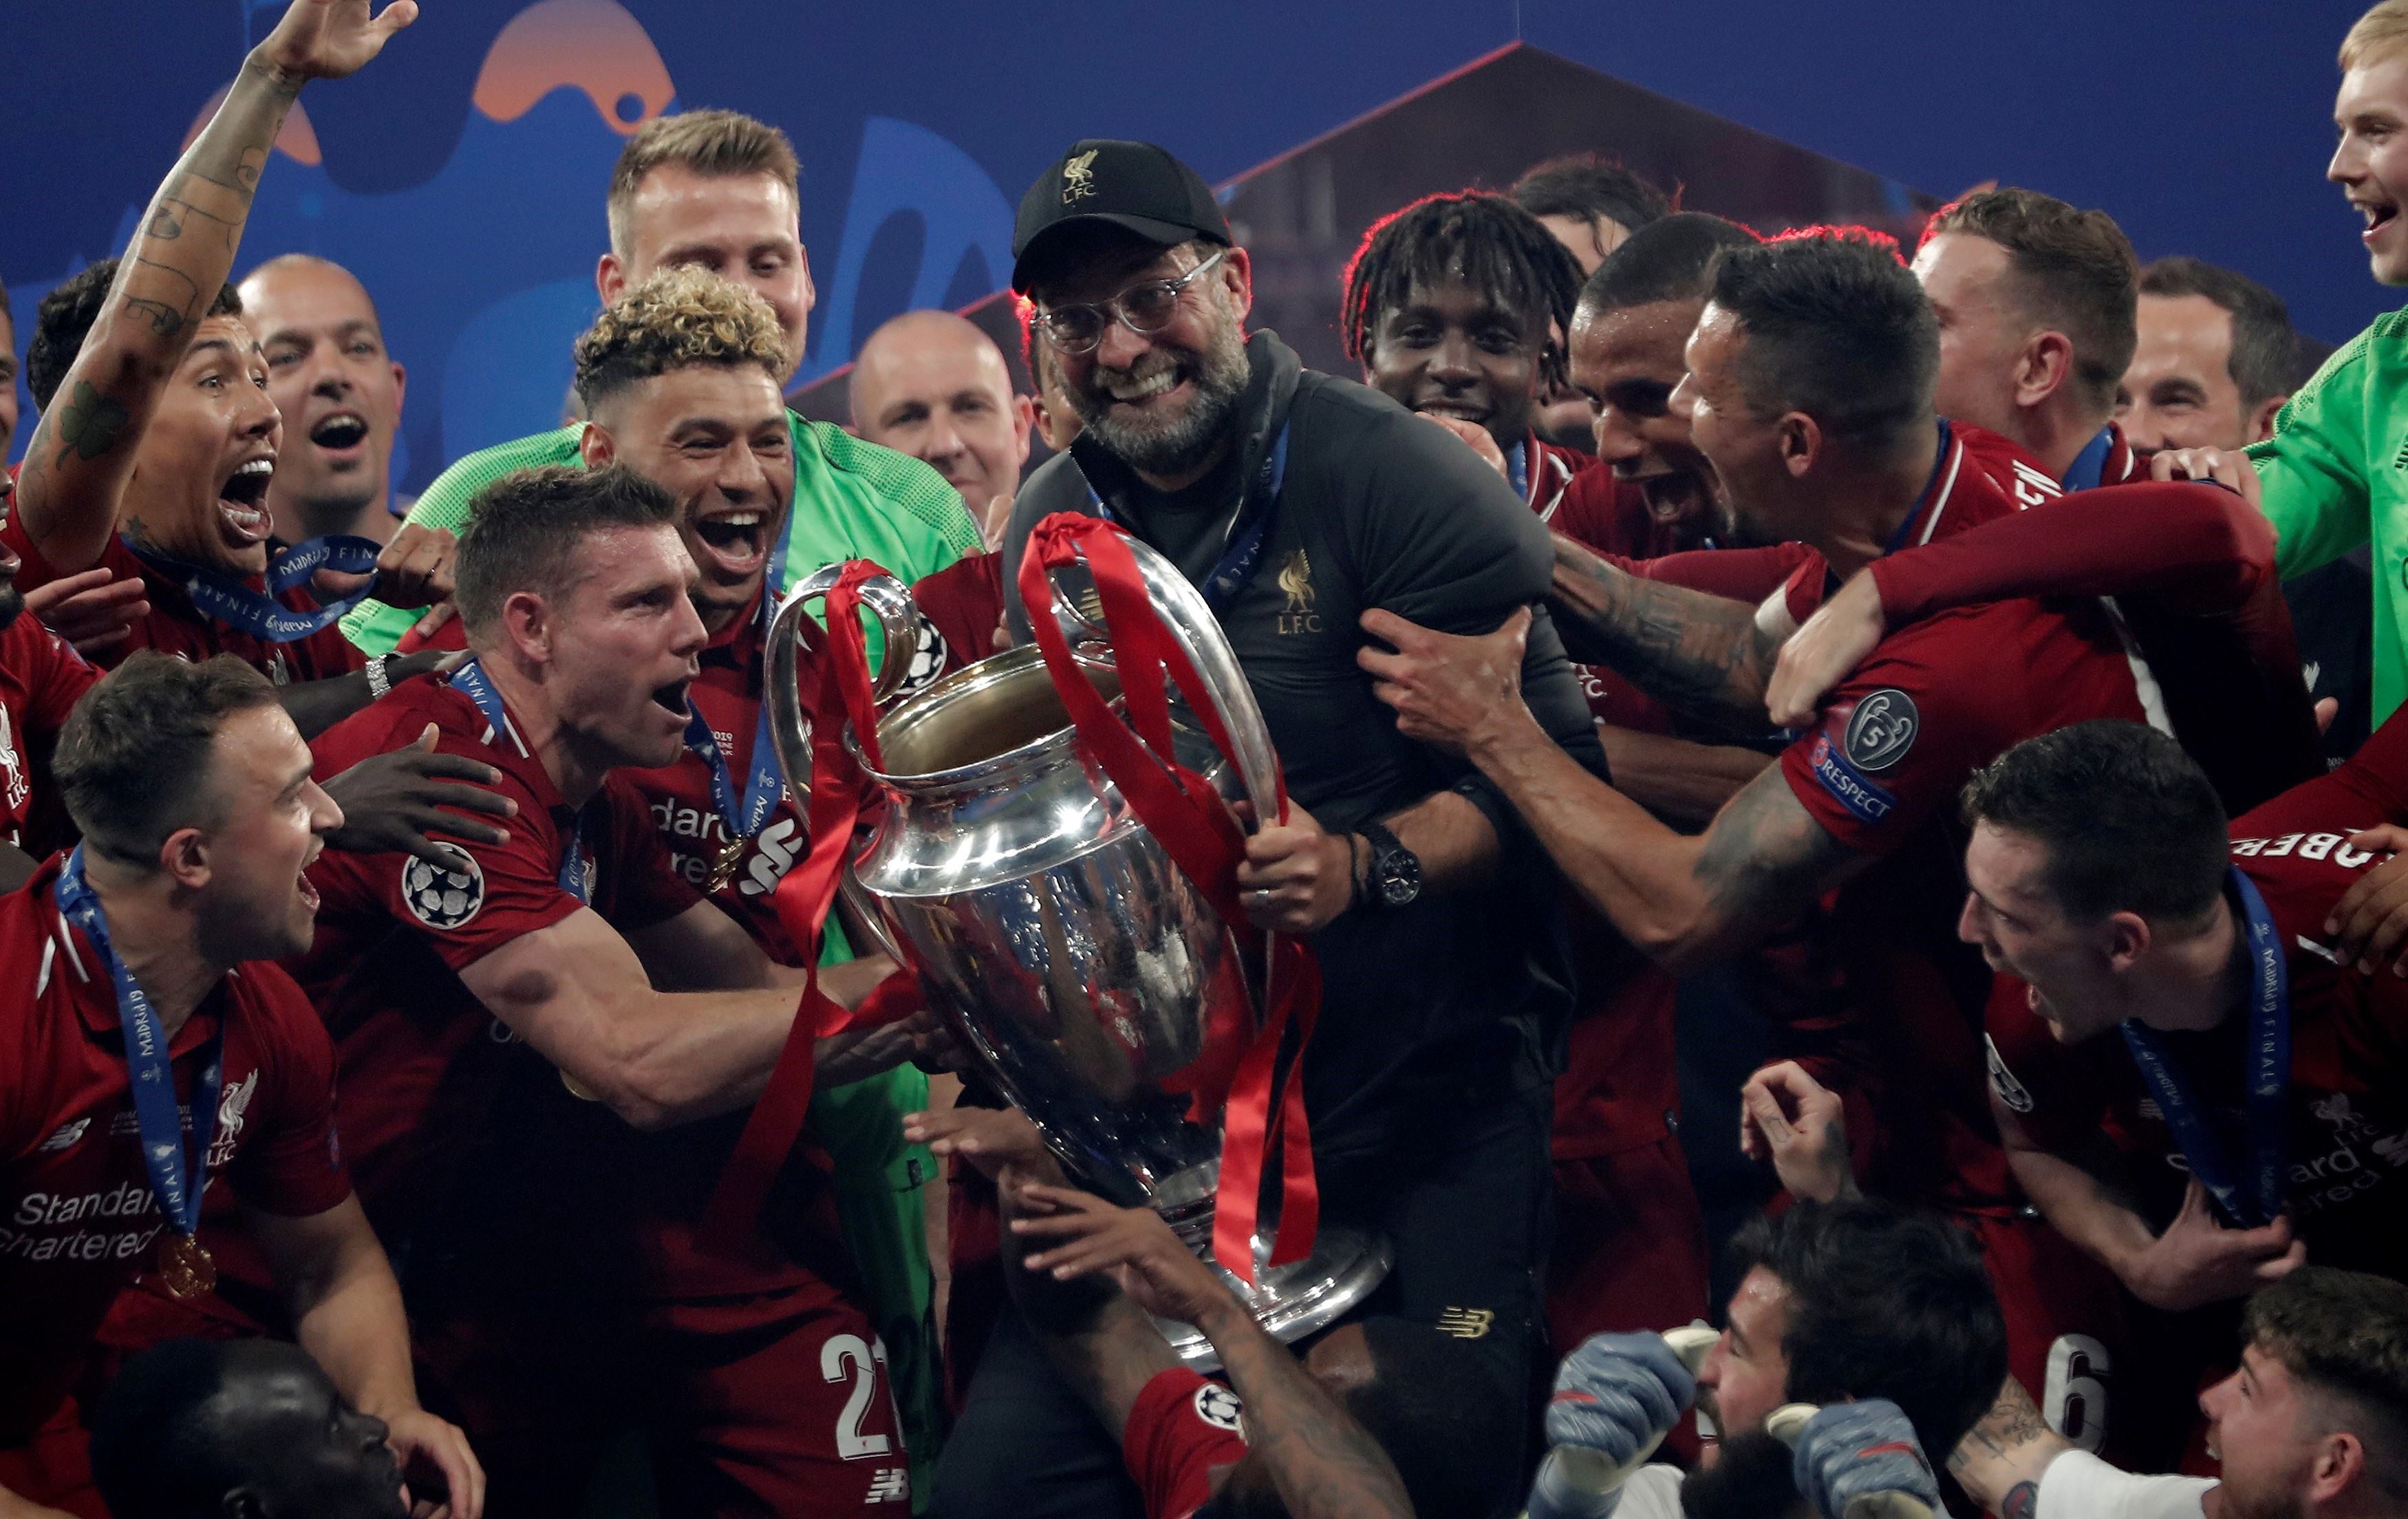 Head coach Jurgen Klopp of Liverpool lifts the Champions League Trophy after winning the UEFA Champions League Final between Tottenham Hotspur and Liverpool at the Wanda Metropolitano in Madrid, Spain on June 01, 2019. (Photo by B